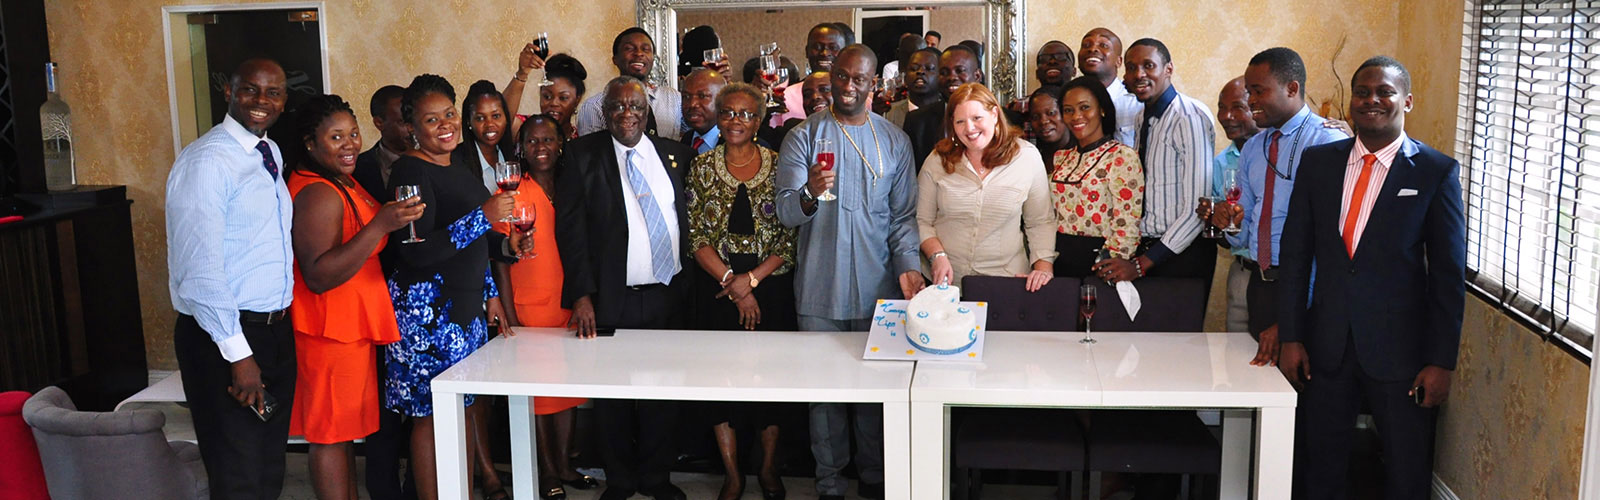 BIU--CAMPUS-LIFE-DIRECTOR-LAUDS-STAFF-AT-PRIVATE-LUNCHEON-1